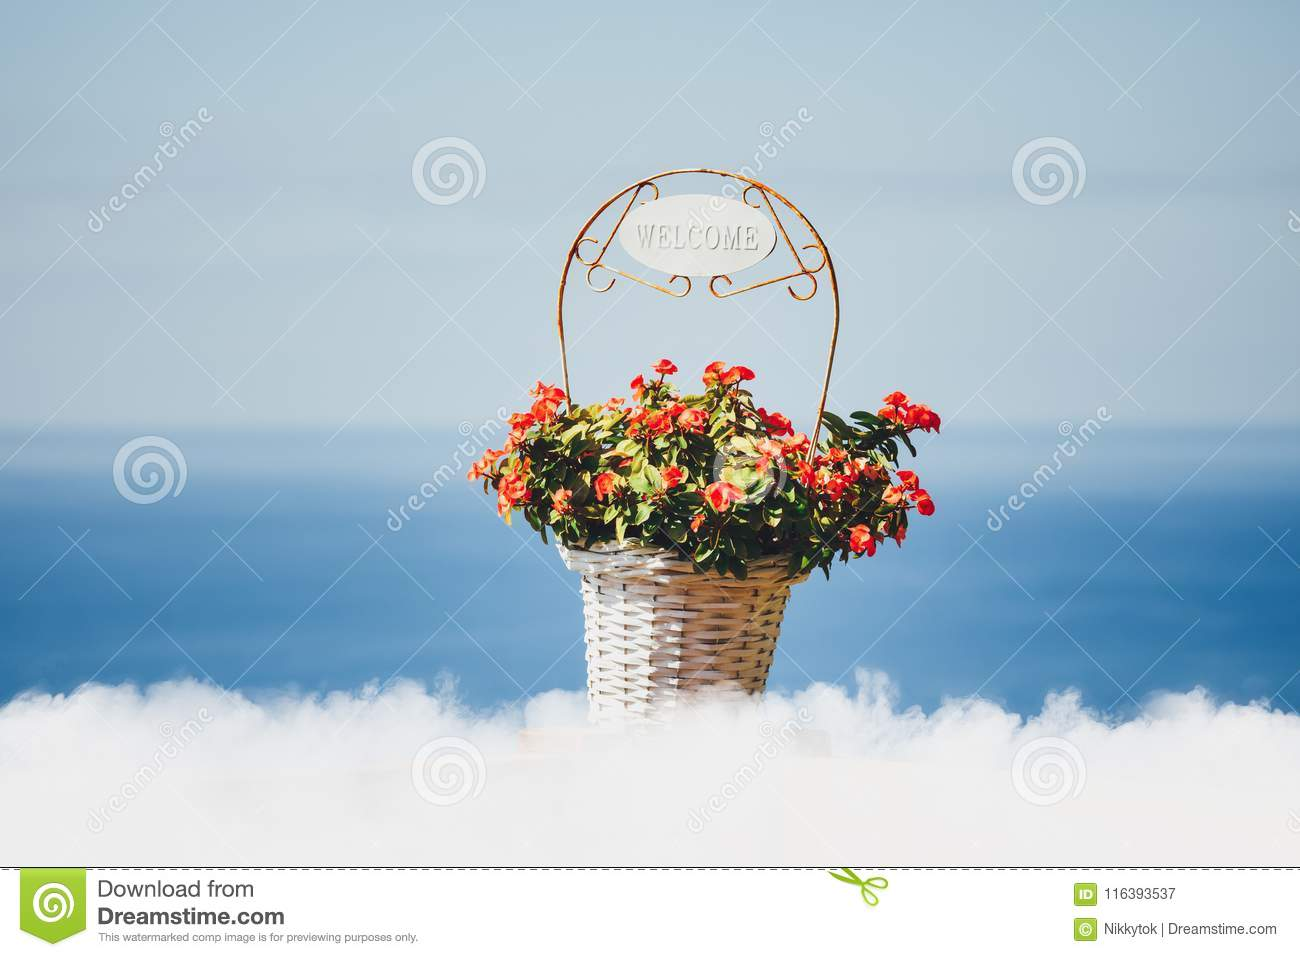 Flowers Basket With Welcome Title, Clouds And Blue Sea Background ...